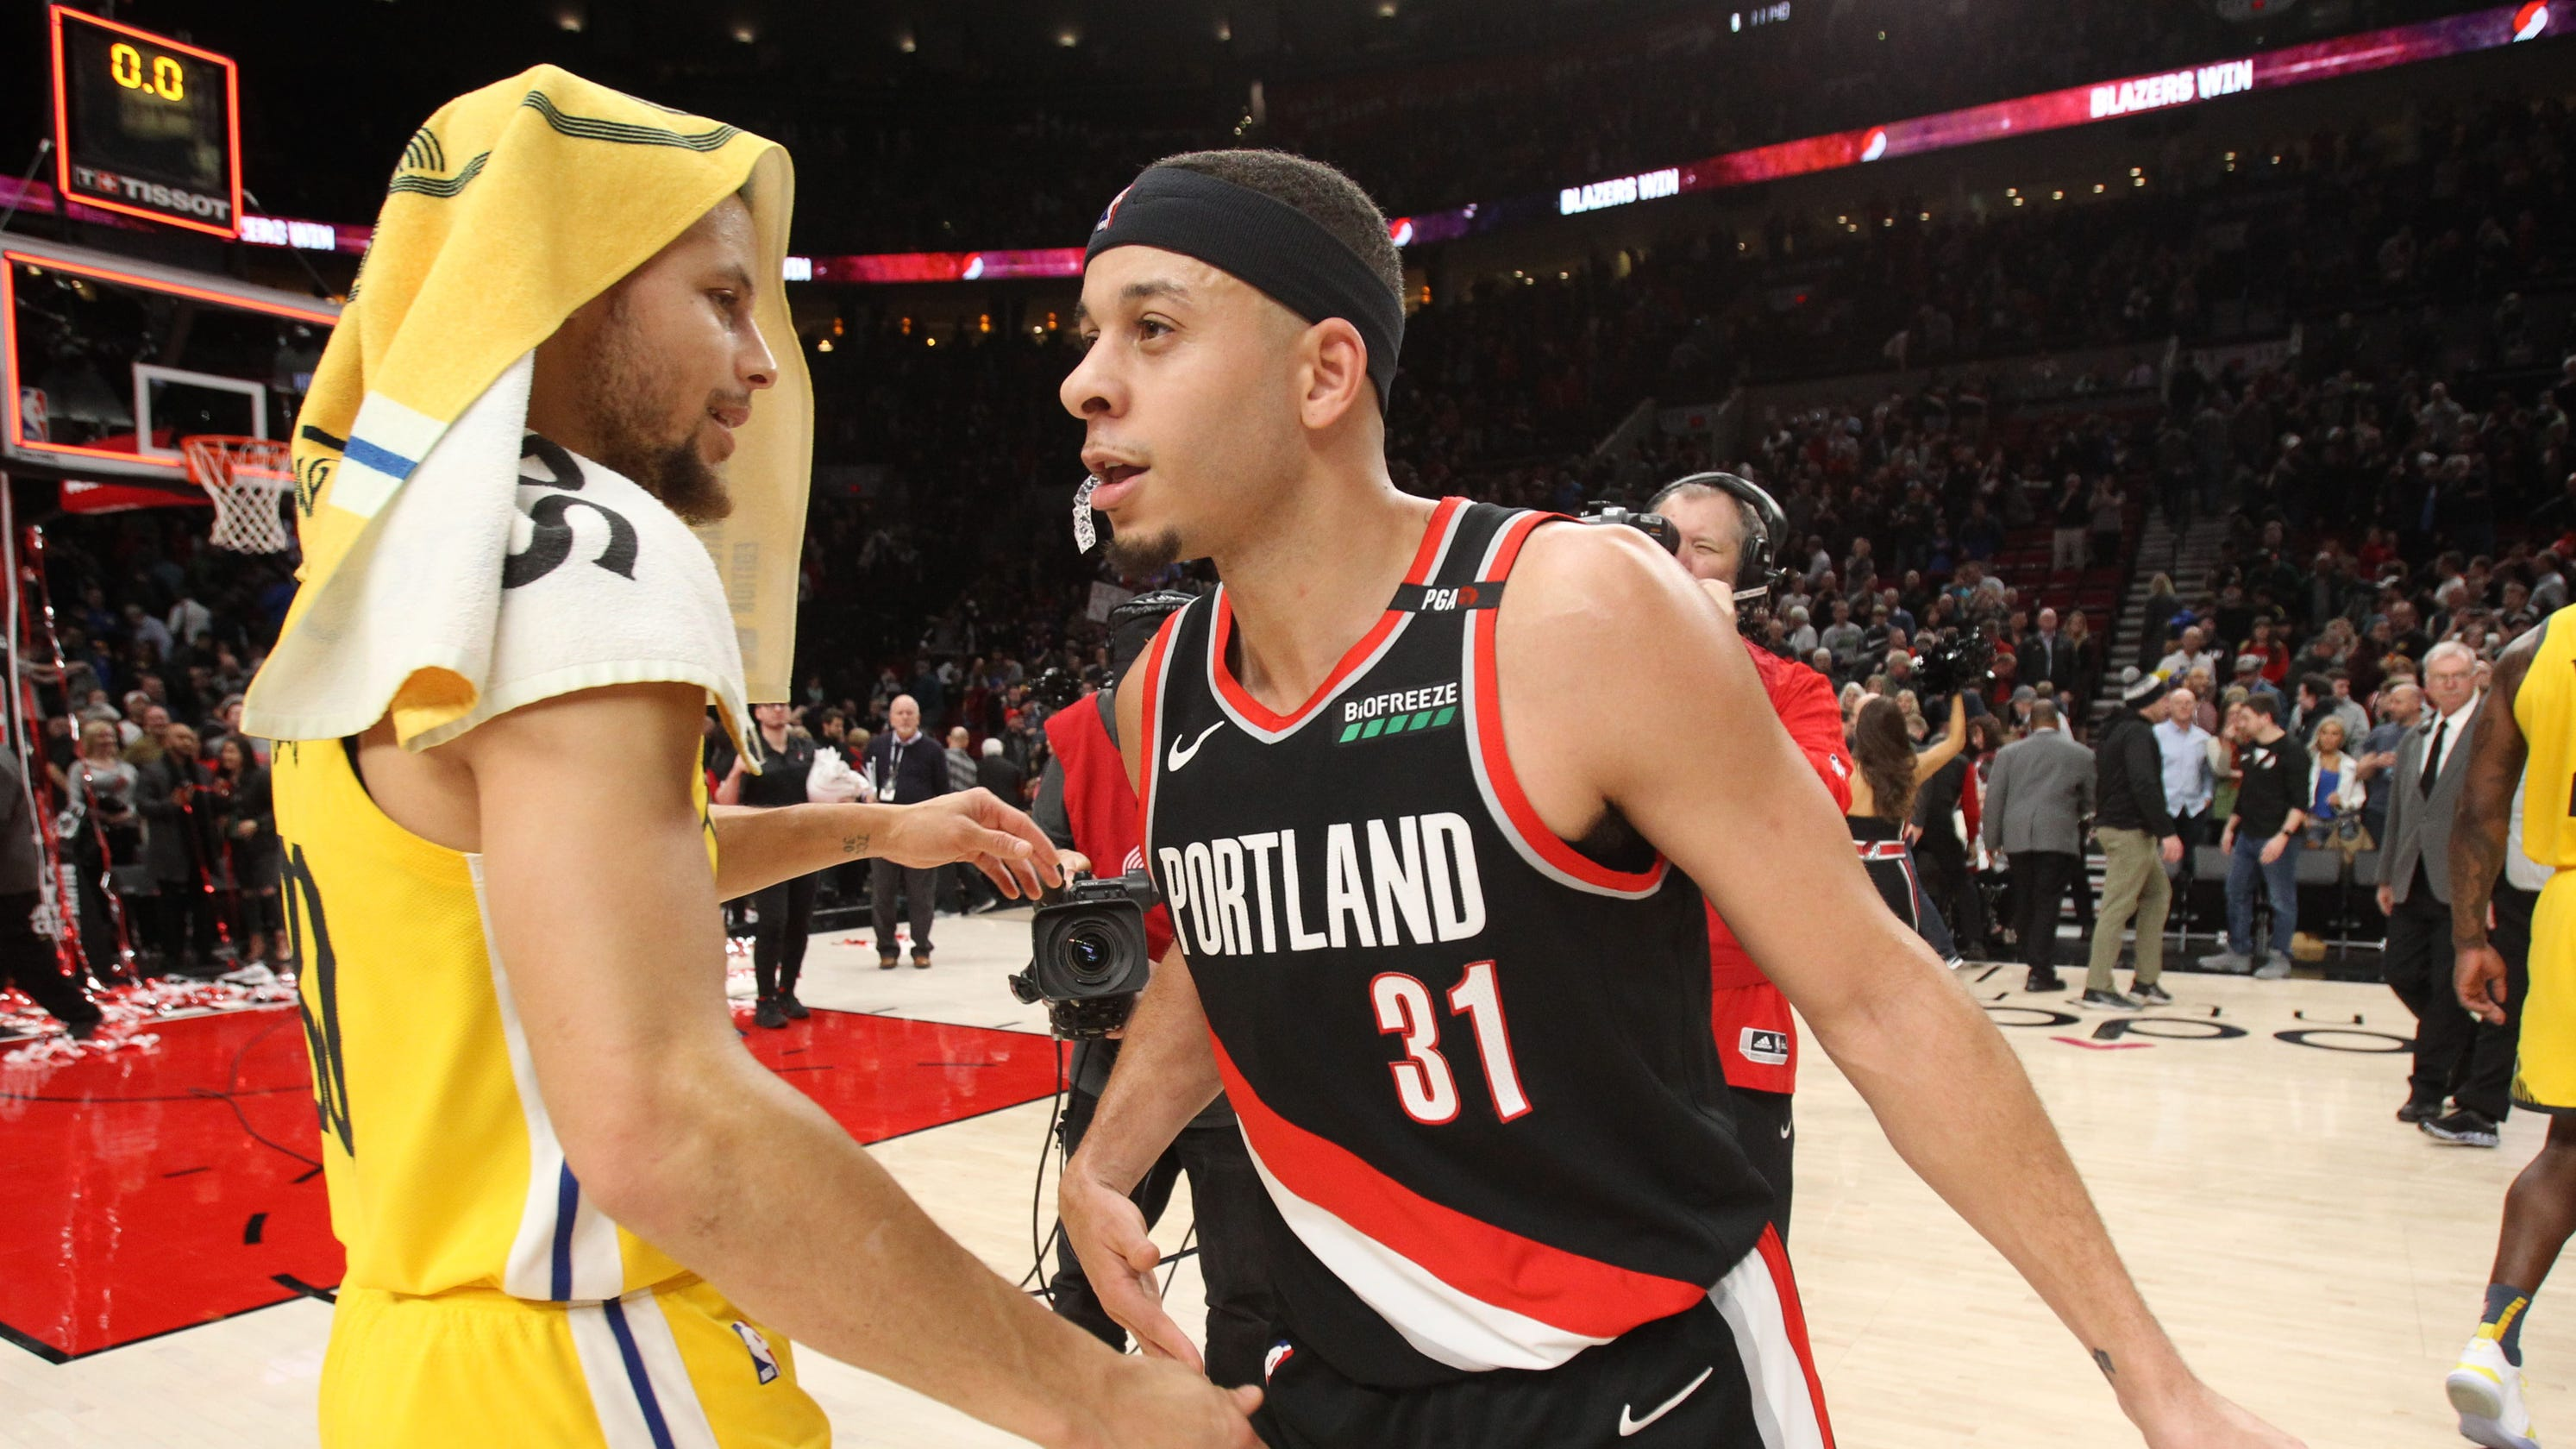 9a78e209259 NBA All-Star weekend: Stephen Curry reveals bet in 3-point contest